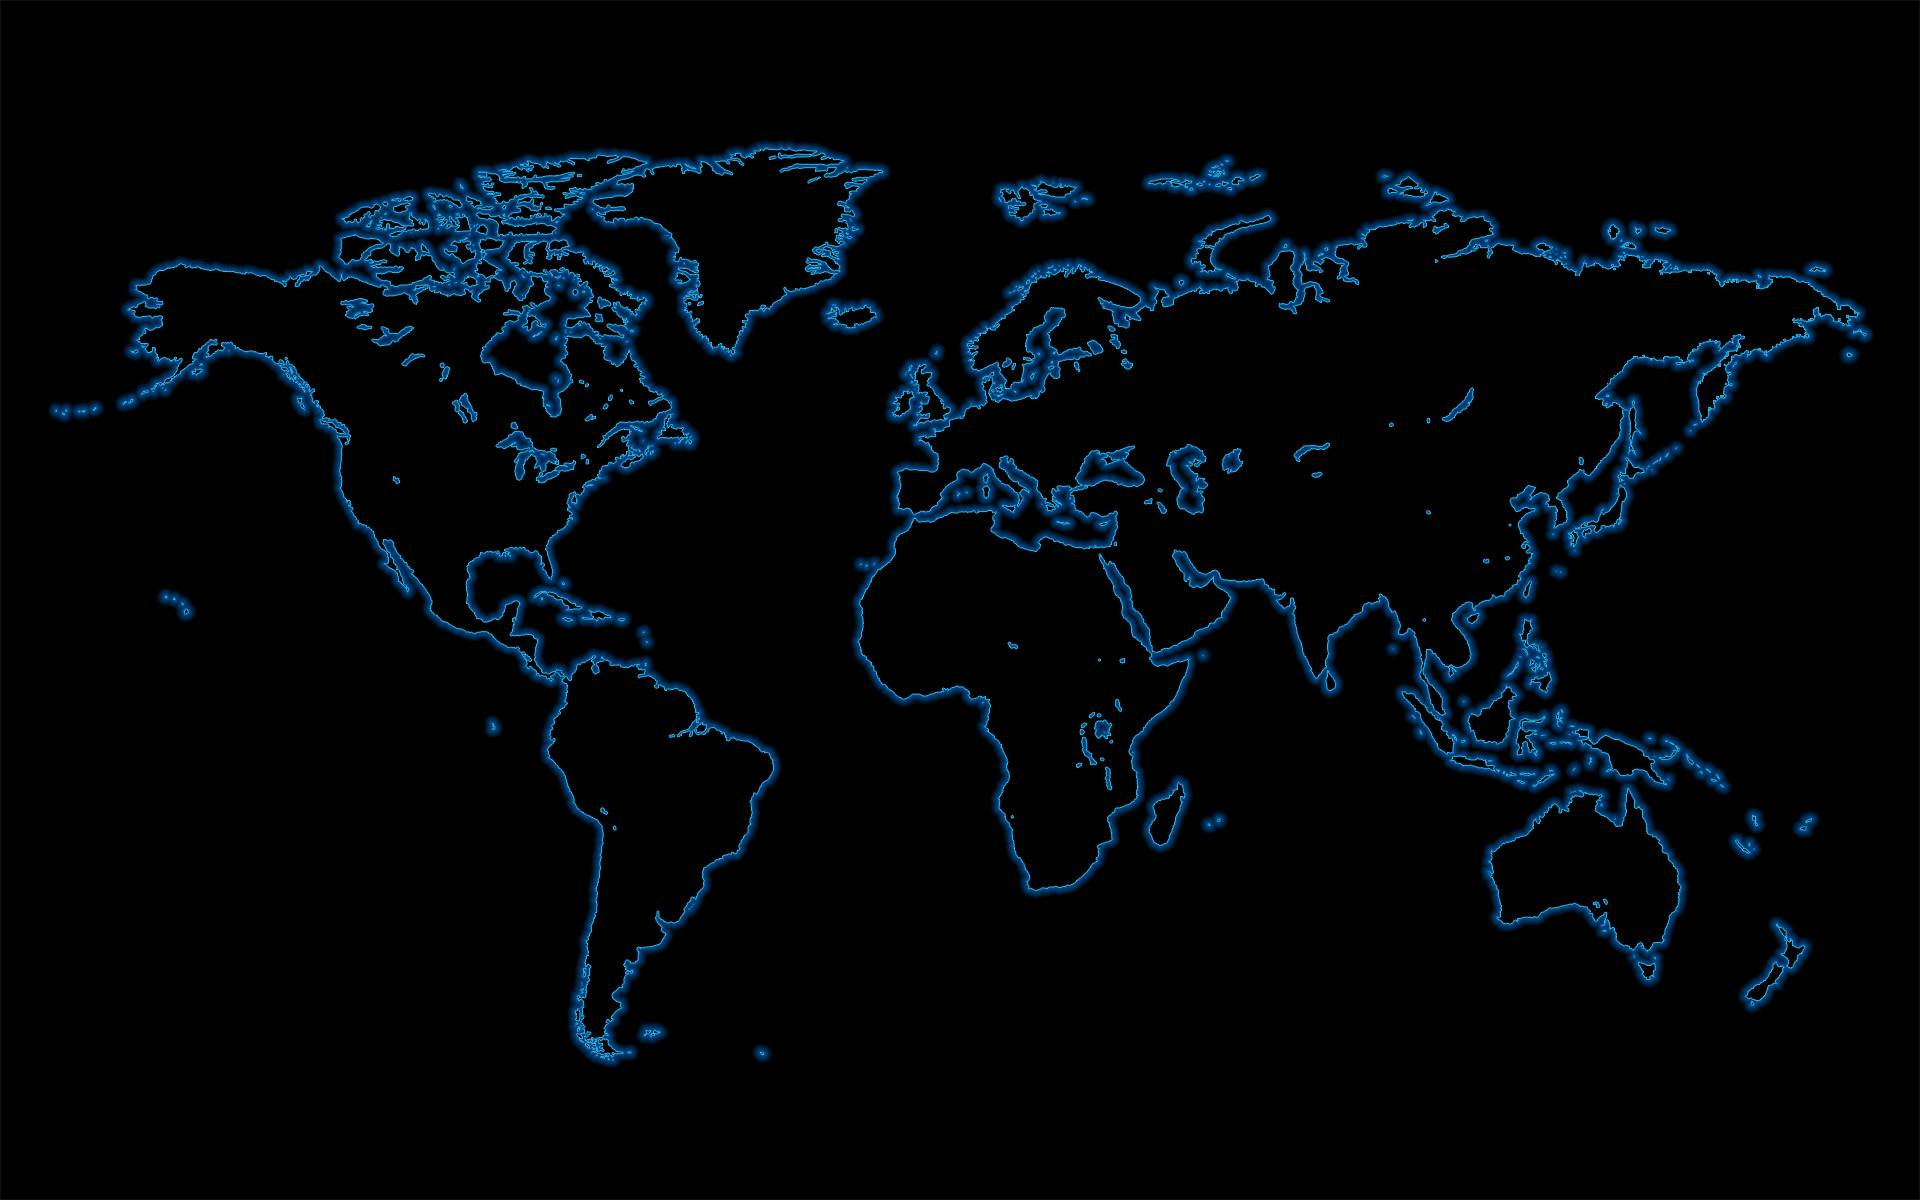 World Map Black And Blue Hd Wallpaper